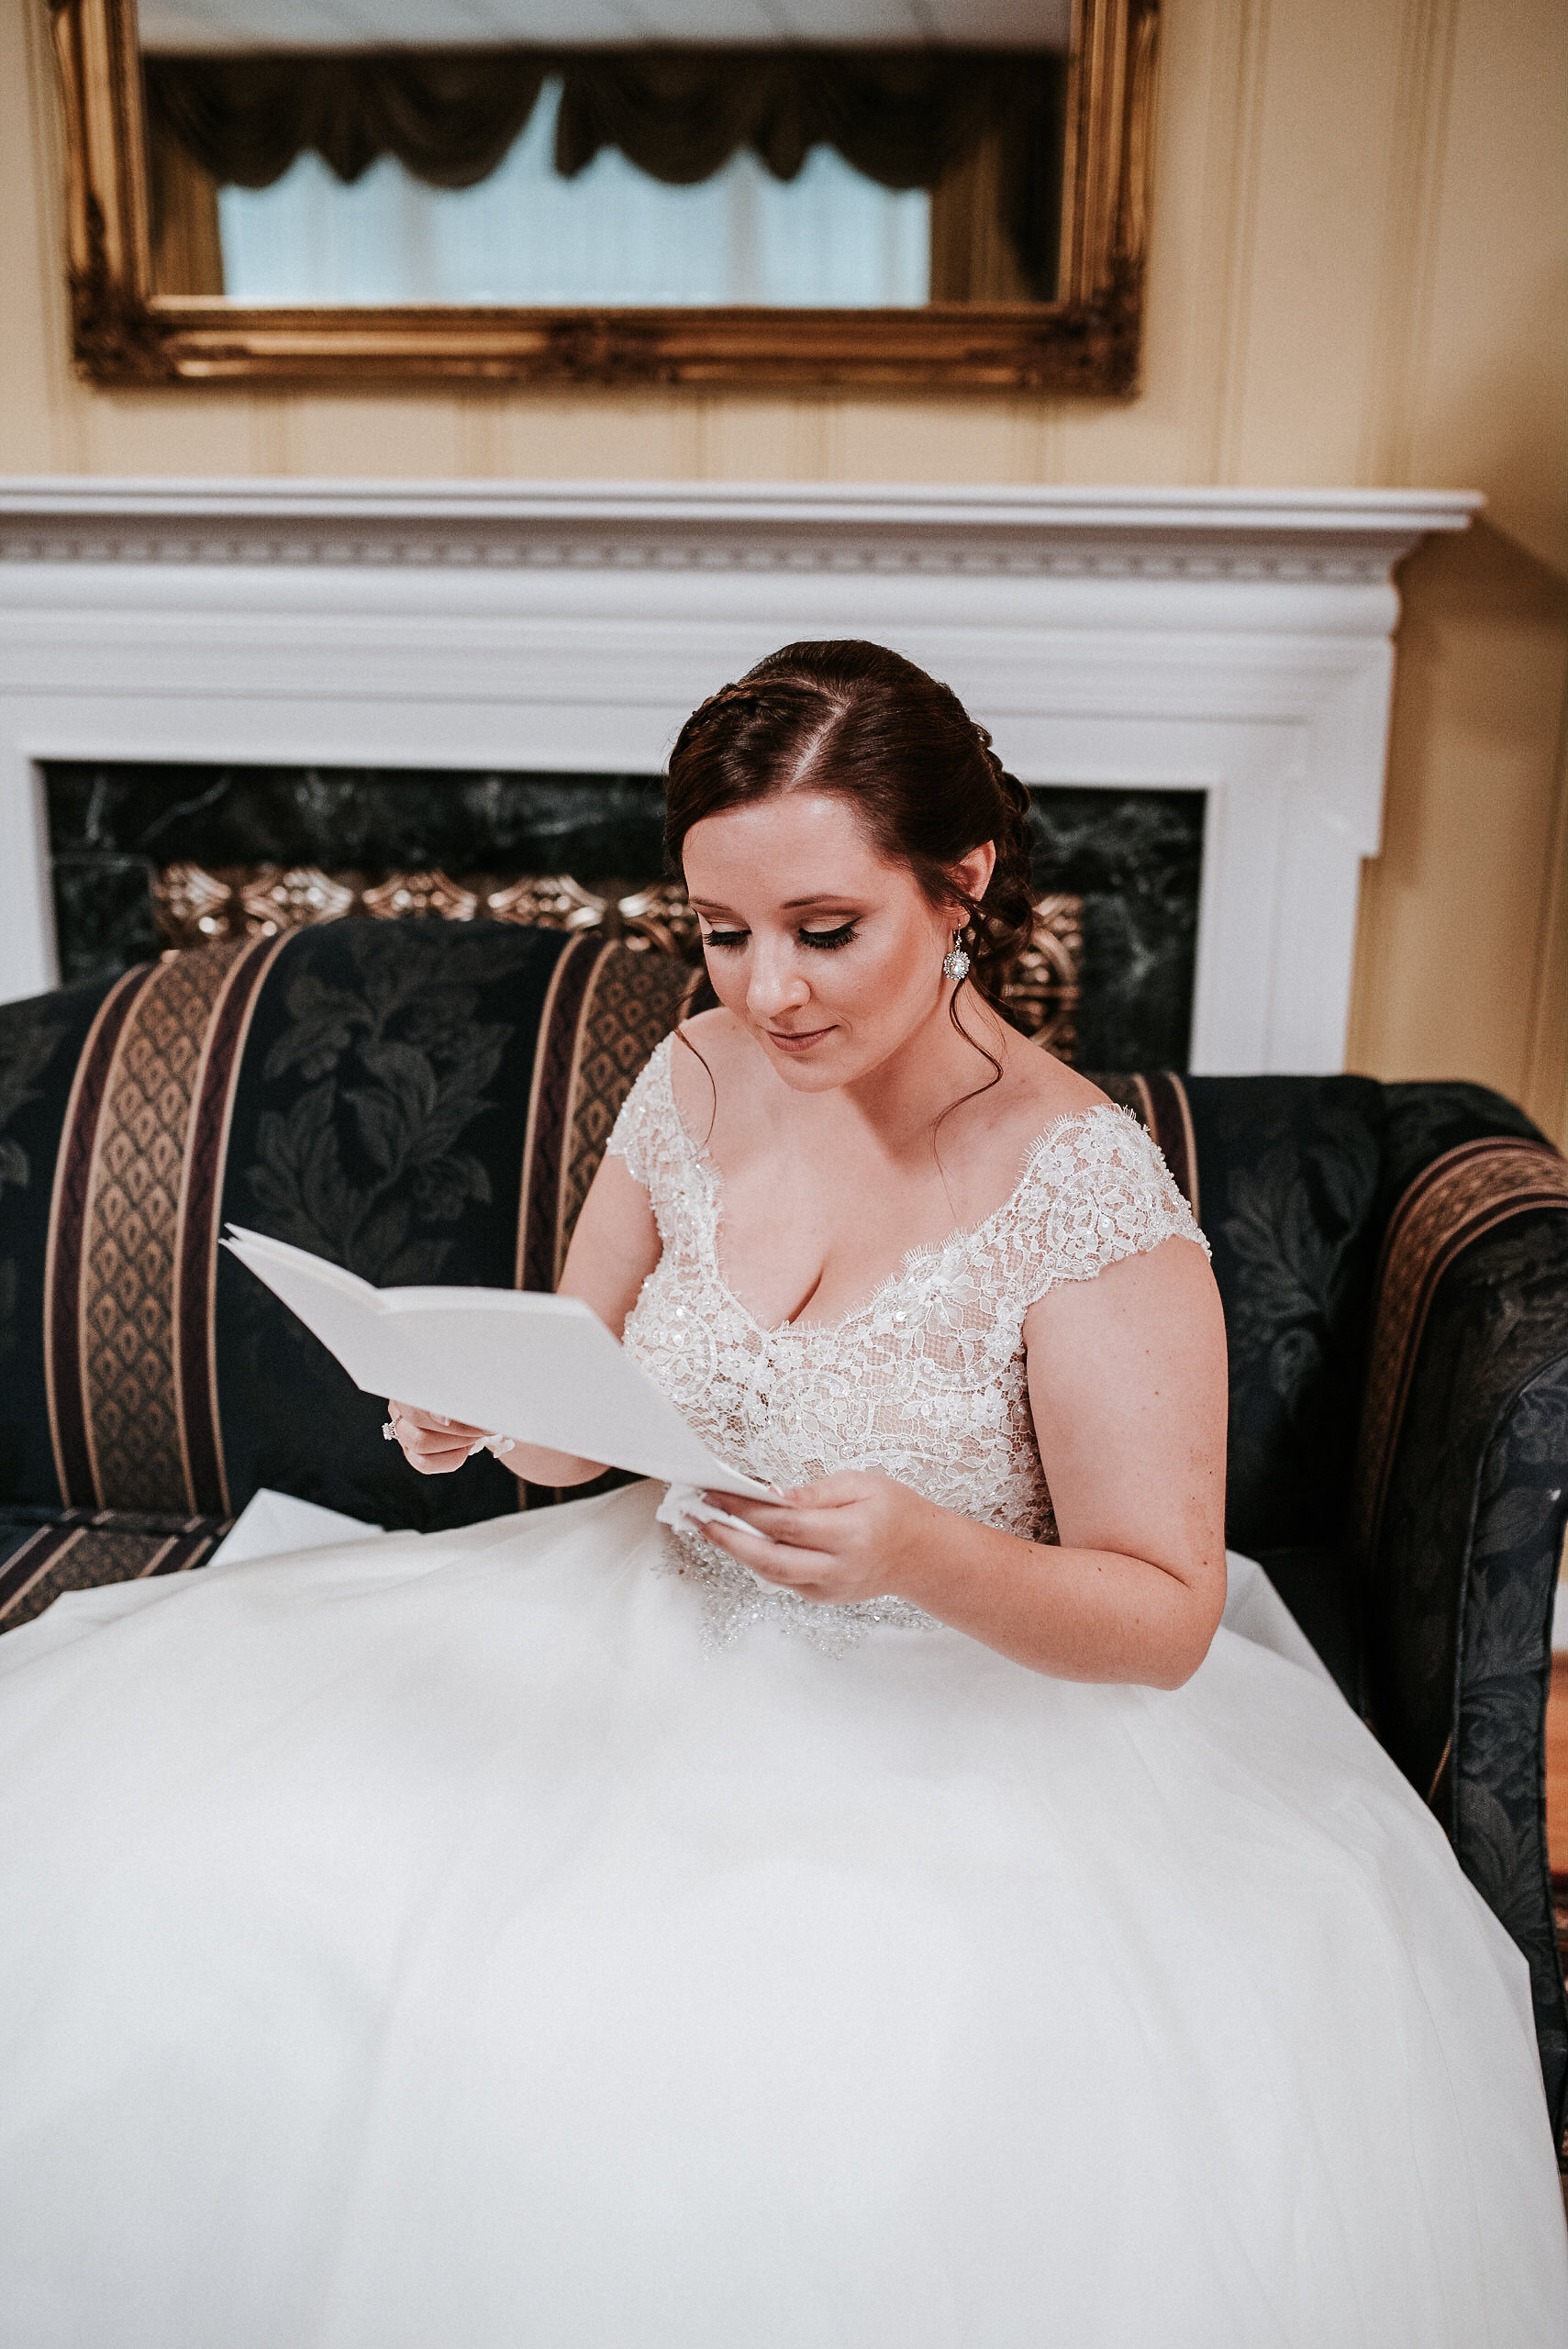 Bride reading letter before wedding